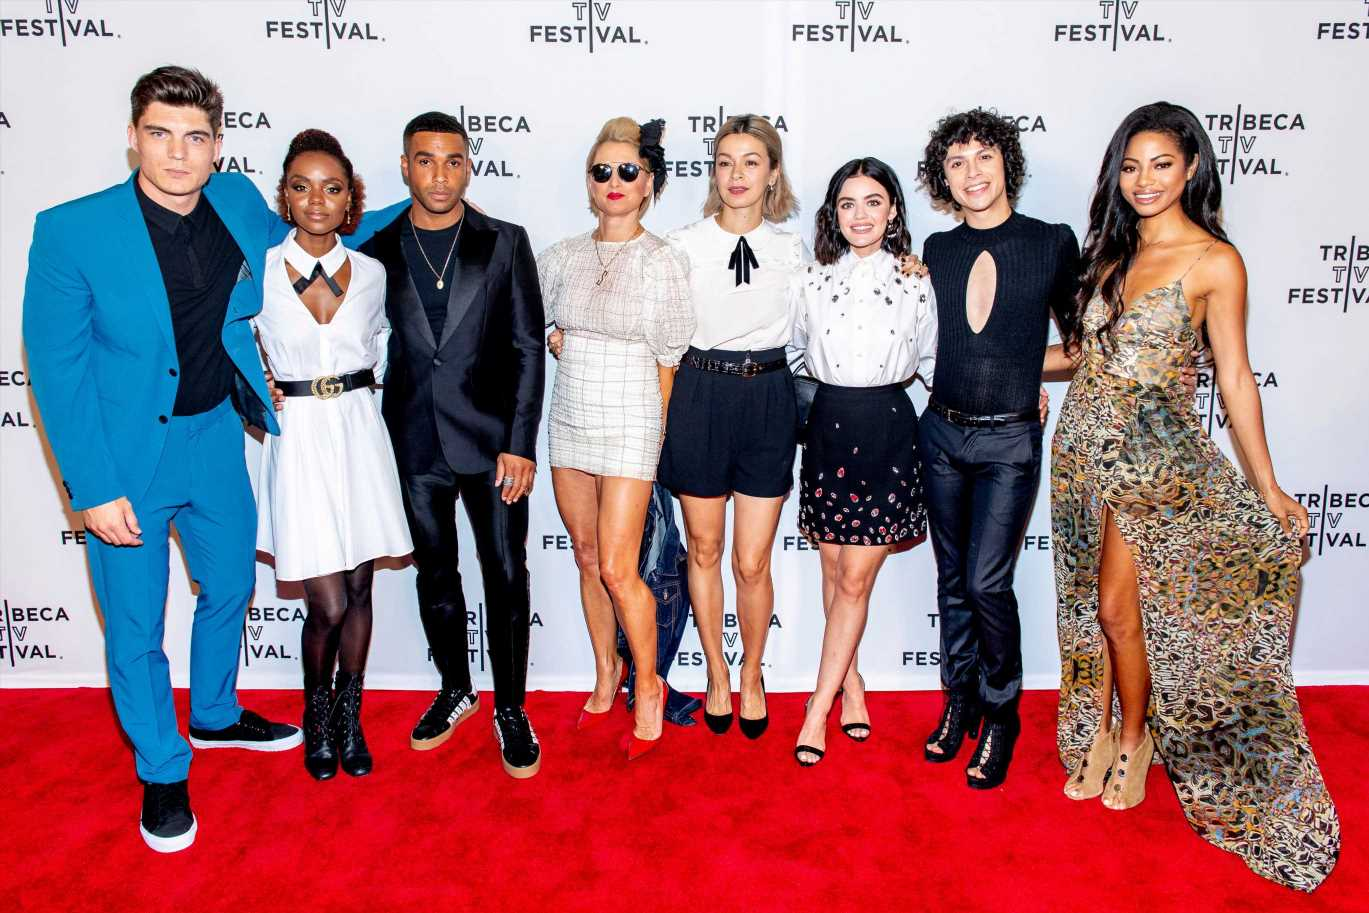 The cast of 'Katy Keene' takes on New York City